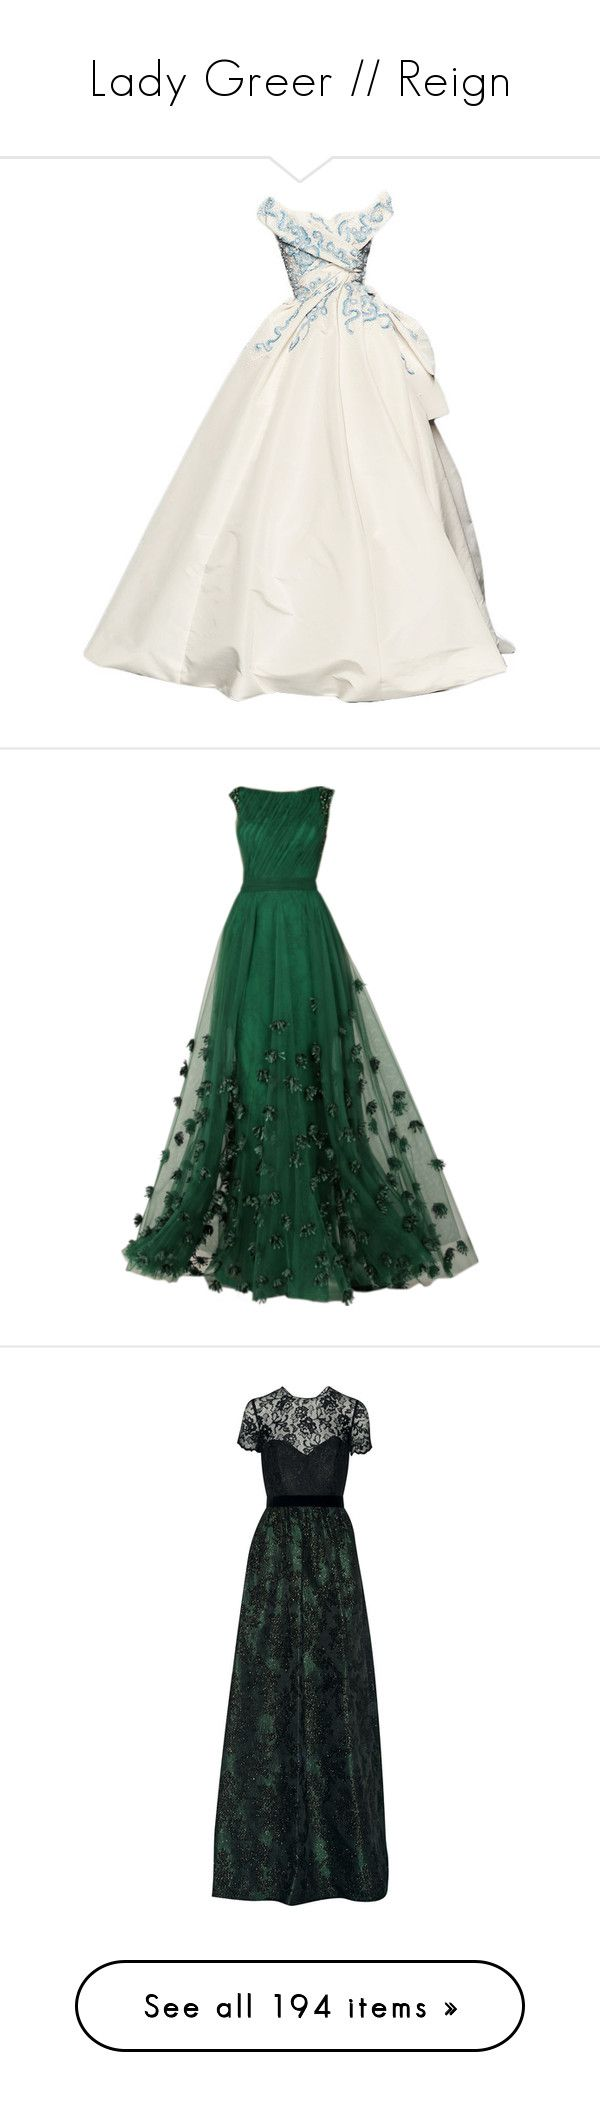 """Lady Greer // Reign"" by ashton-kate ❤ liked on Polyvore featuring Reign, LadyGreer, dresses, gowns, long dresses, vestidos, couture dresses, green gown, tony ward dresses and green dress"